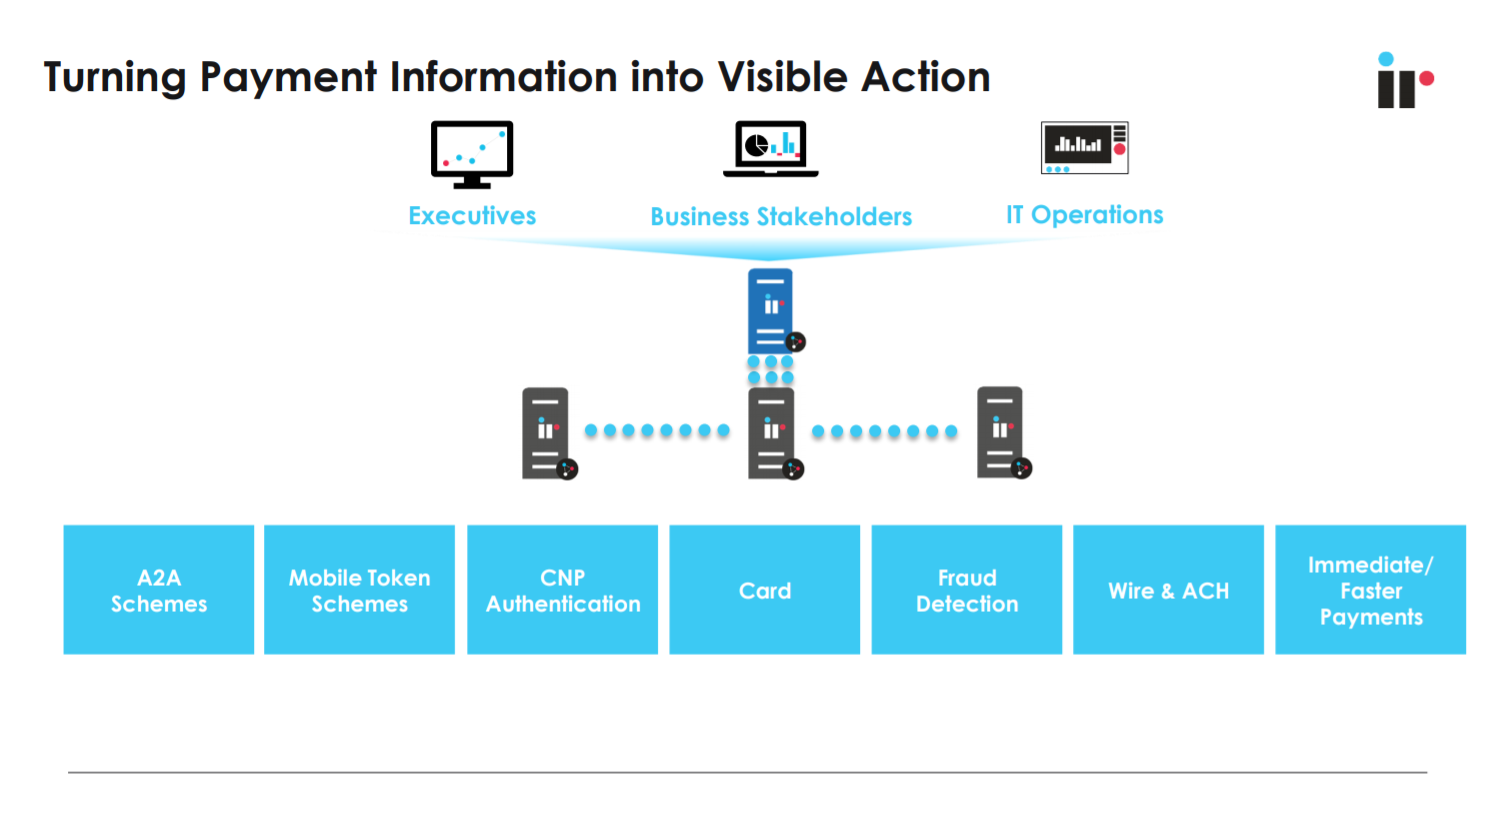 Turning Payment Information into Visible Action